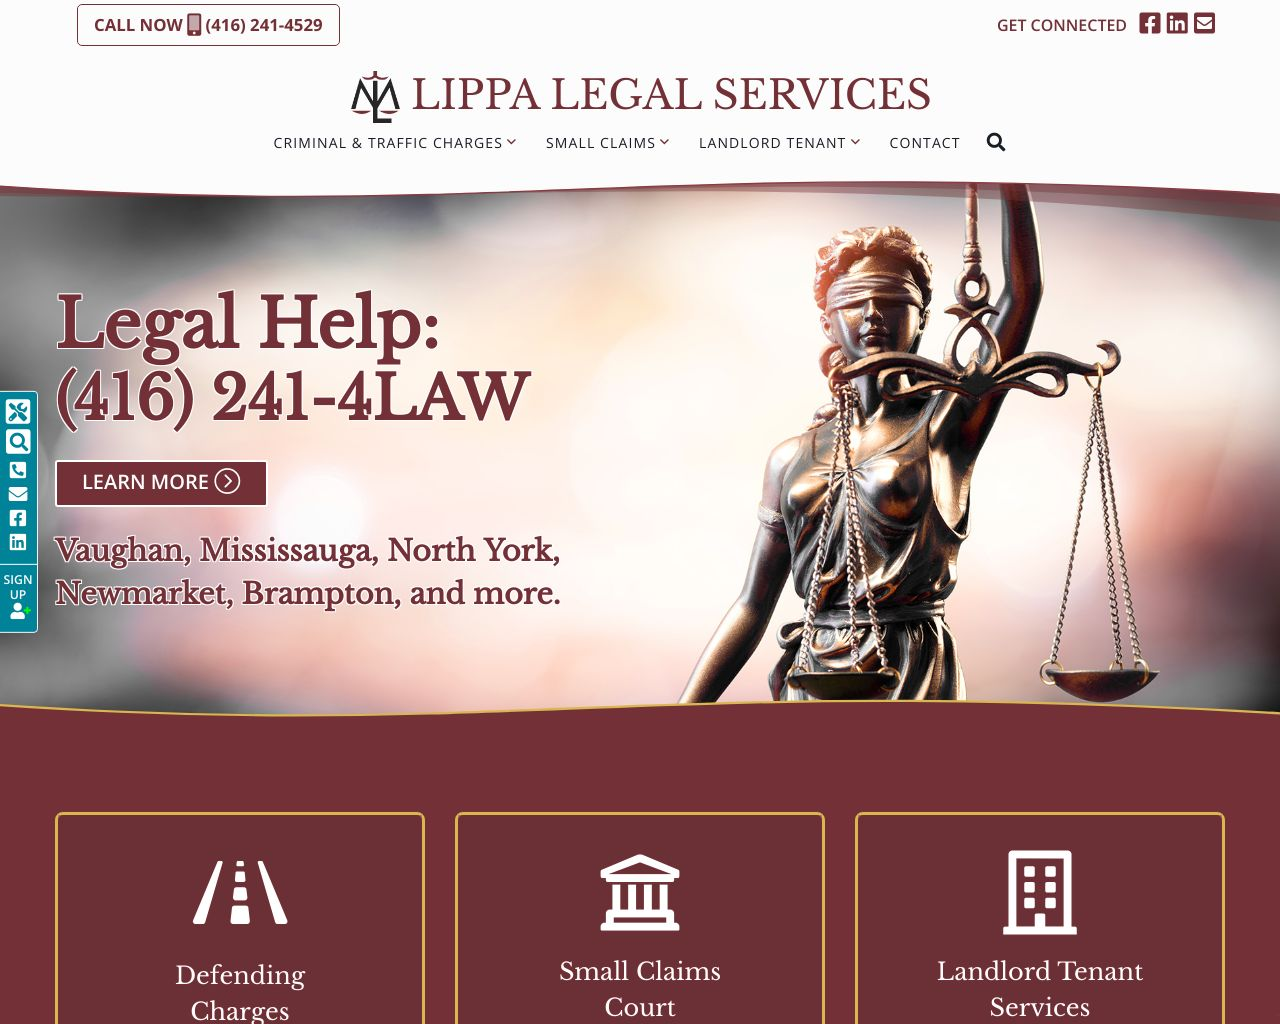 Website: Lippa Legal Services